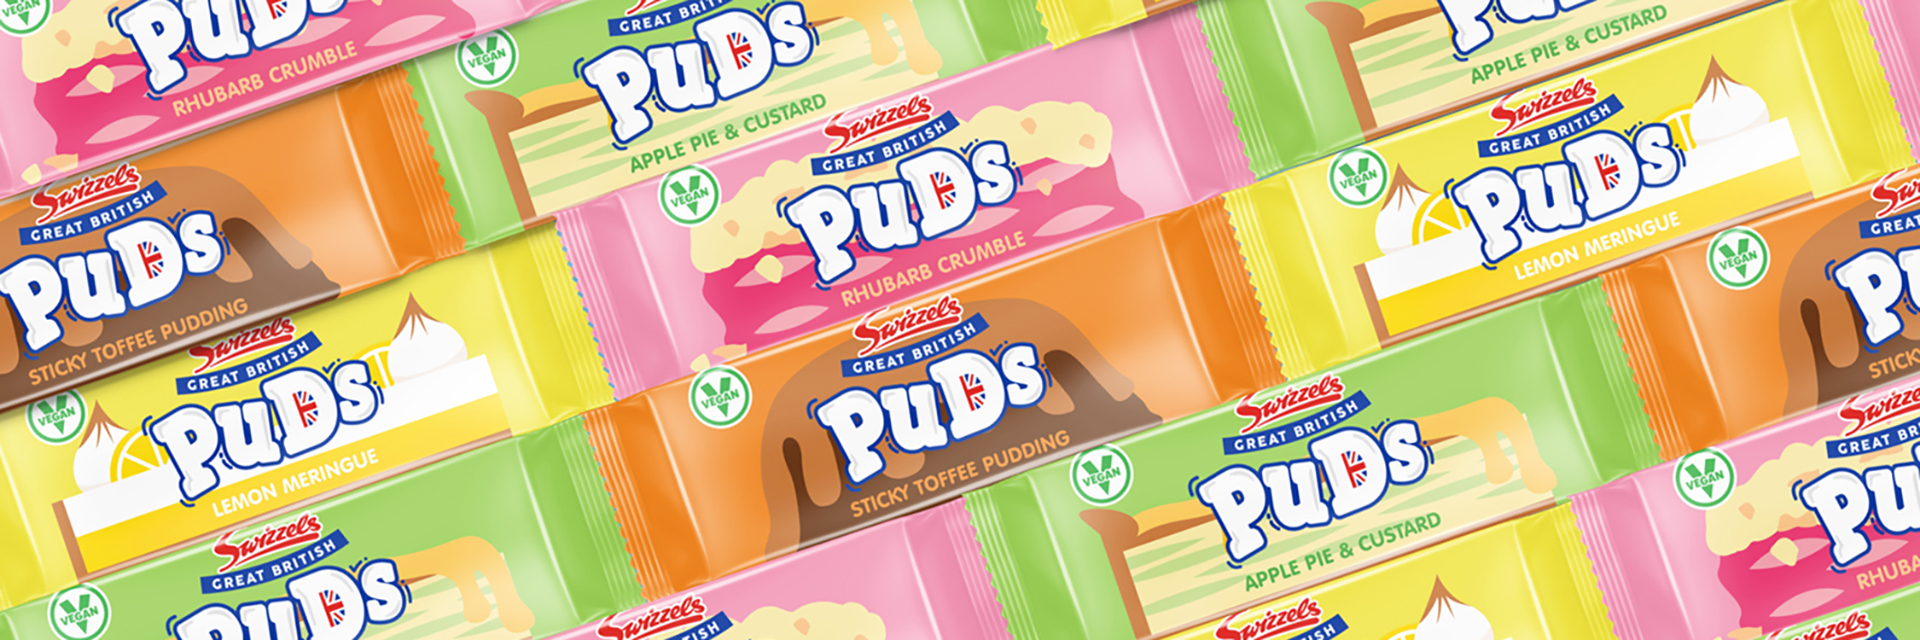 Swizzels Great British Puds Chew Bar image